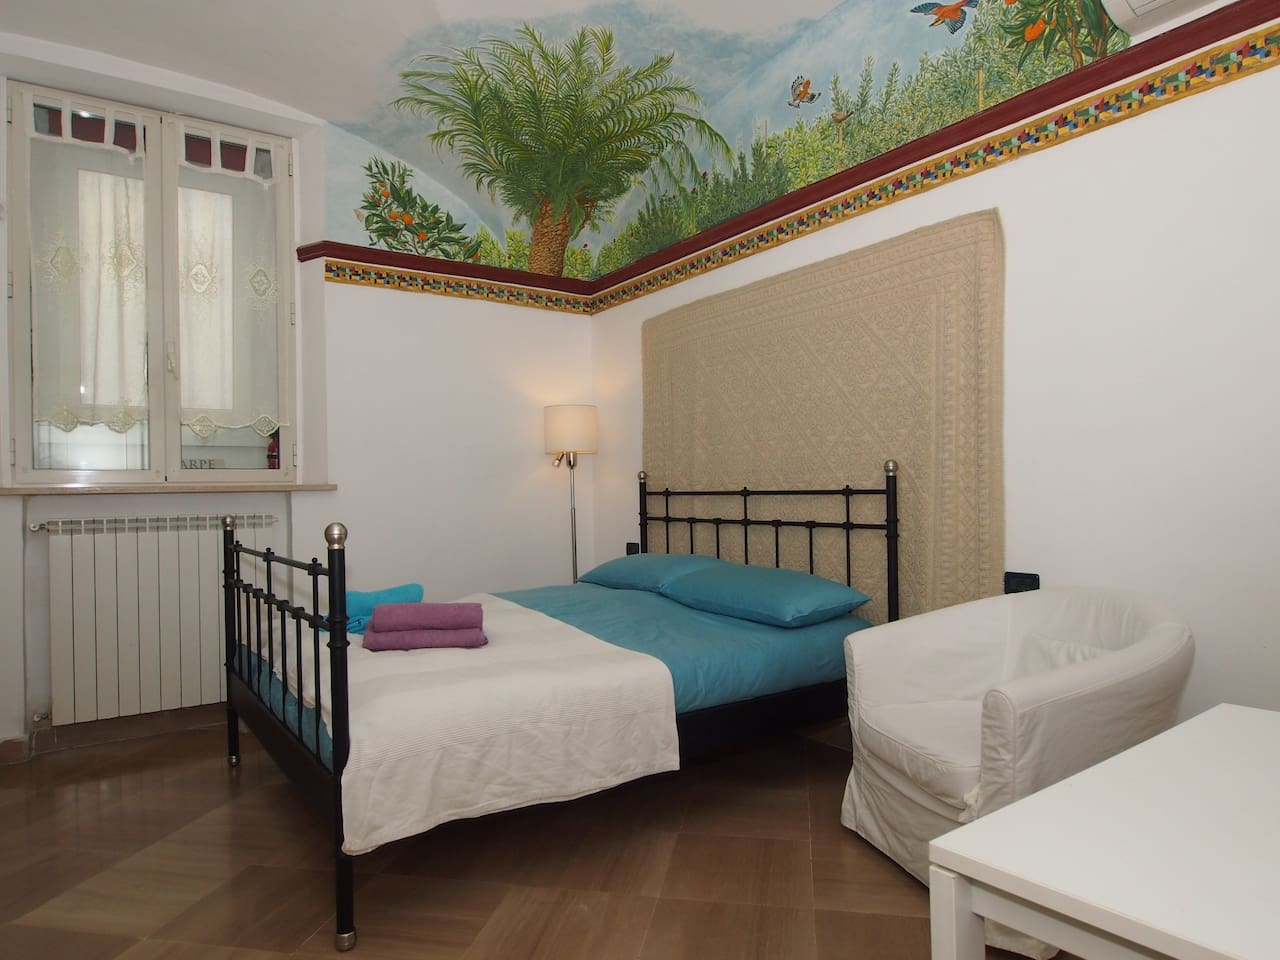 A large studio 25sqm with a large bed and a fresco painting's on the wall, like classical roman domus, with heather and clima for a confortable stay